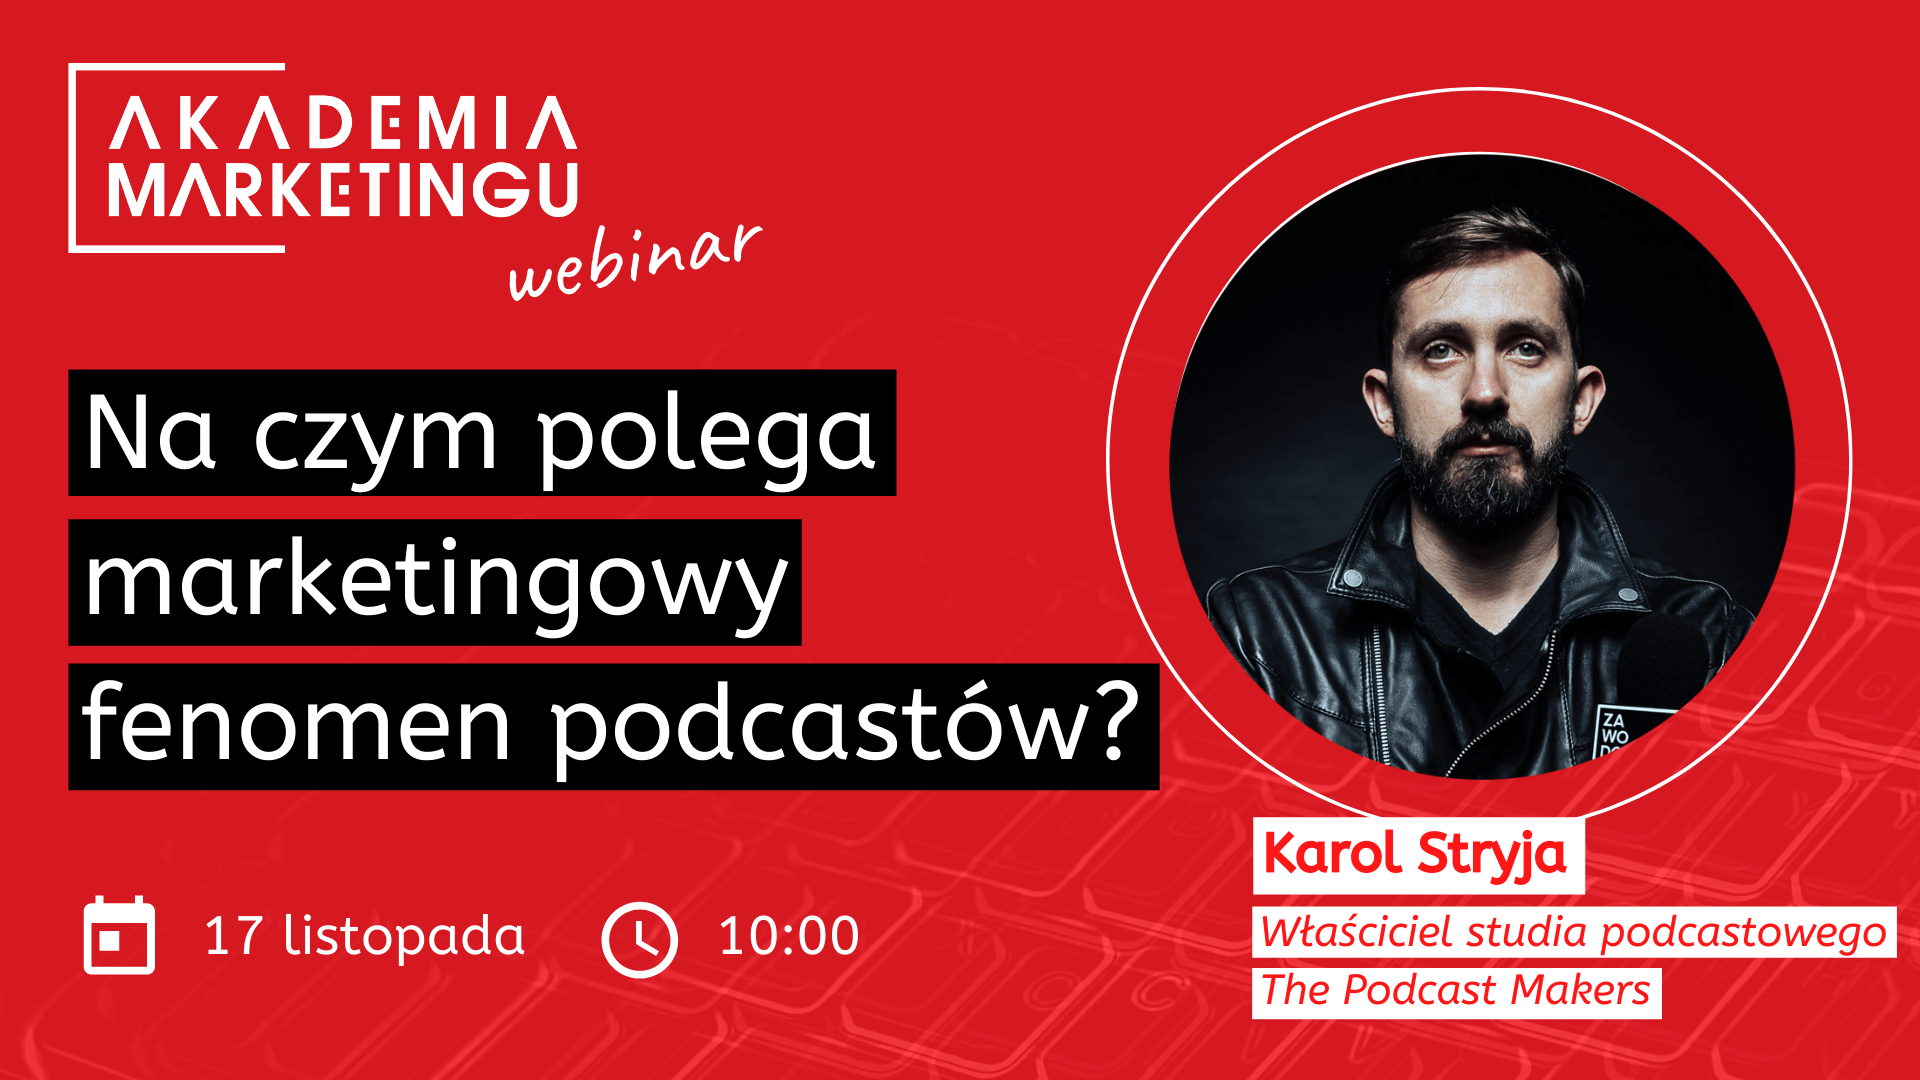 akademia-marketingu-na-czym-polega-marketingowy-fenomen-podcastow-na-czerwonym-tle